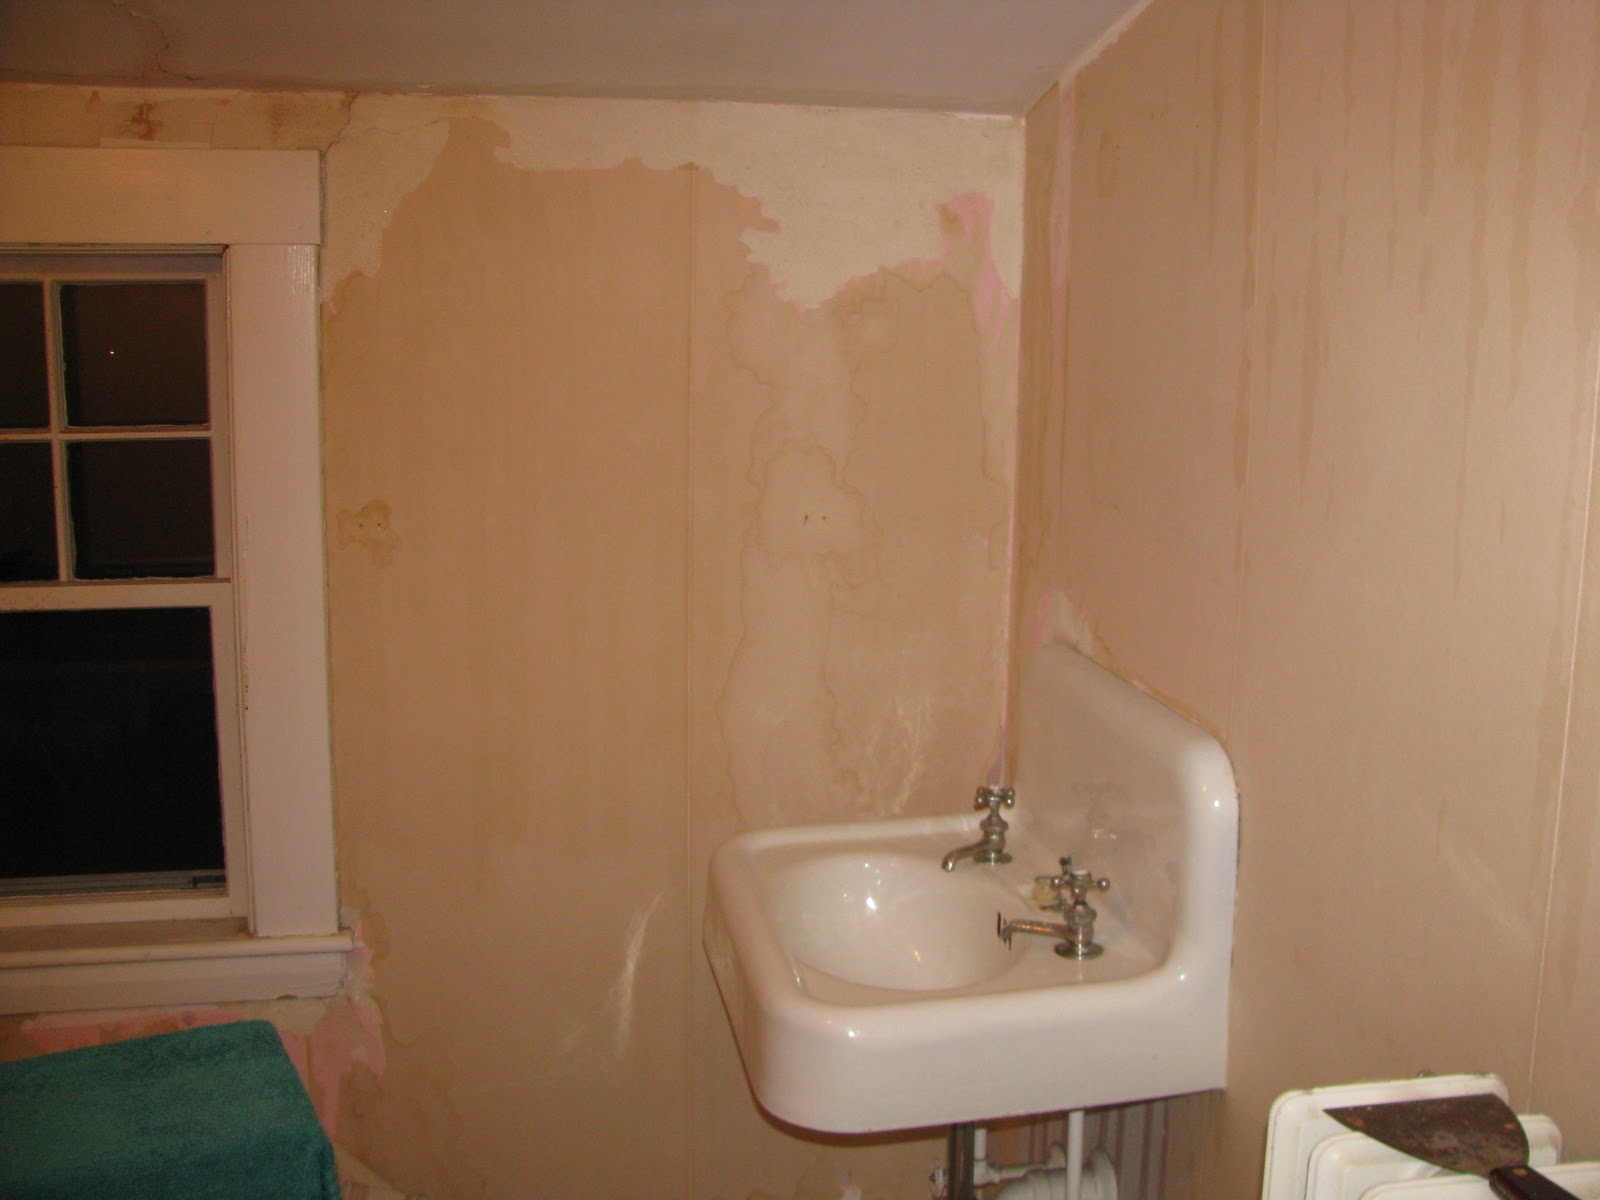 removing wallpaper with fabric softener removing wallpaper with fabric 1600x1200